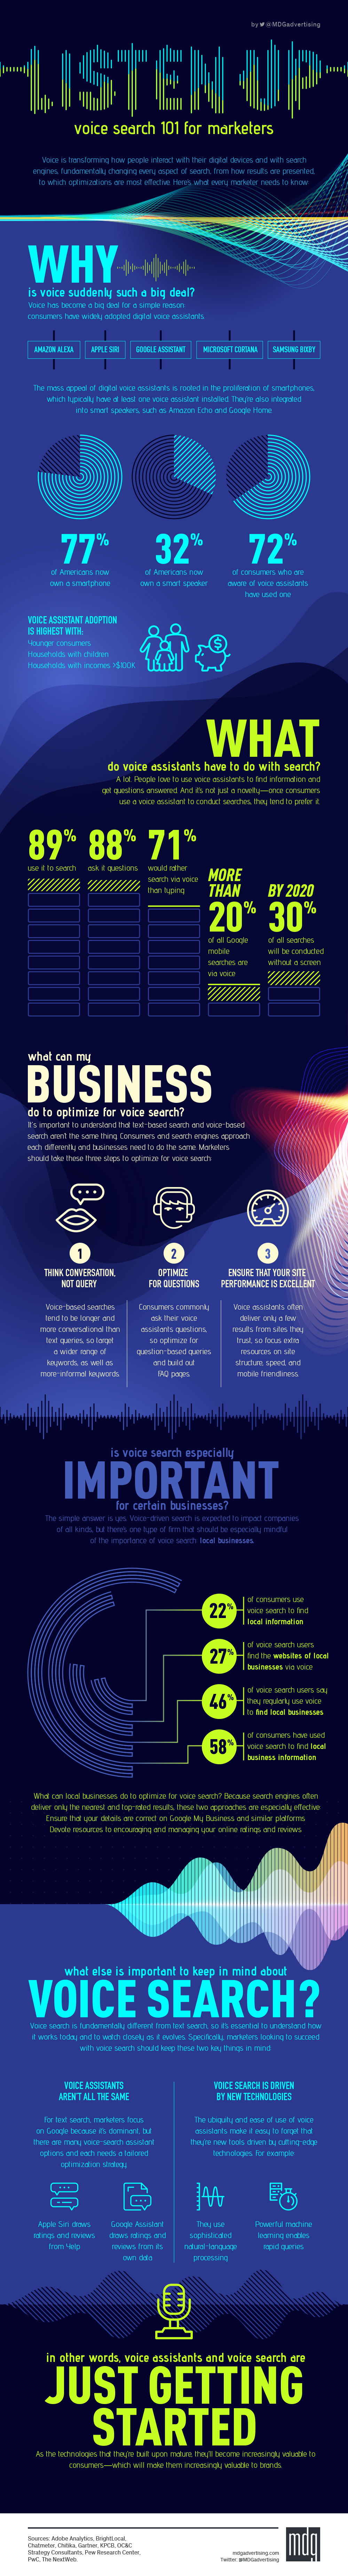 Infographic looks at key voice search trends and provides relative SEO tips